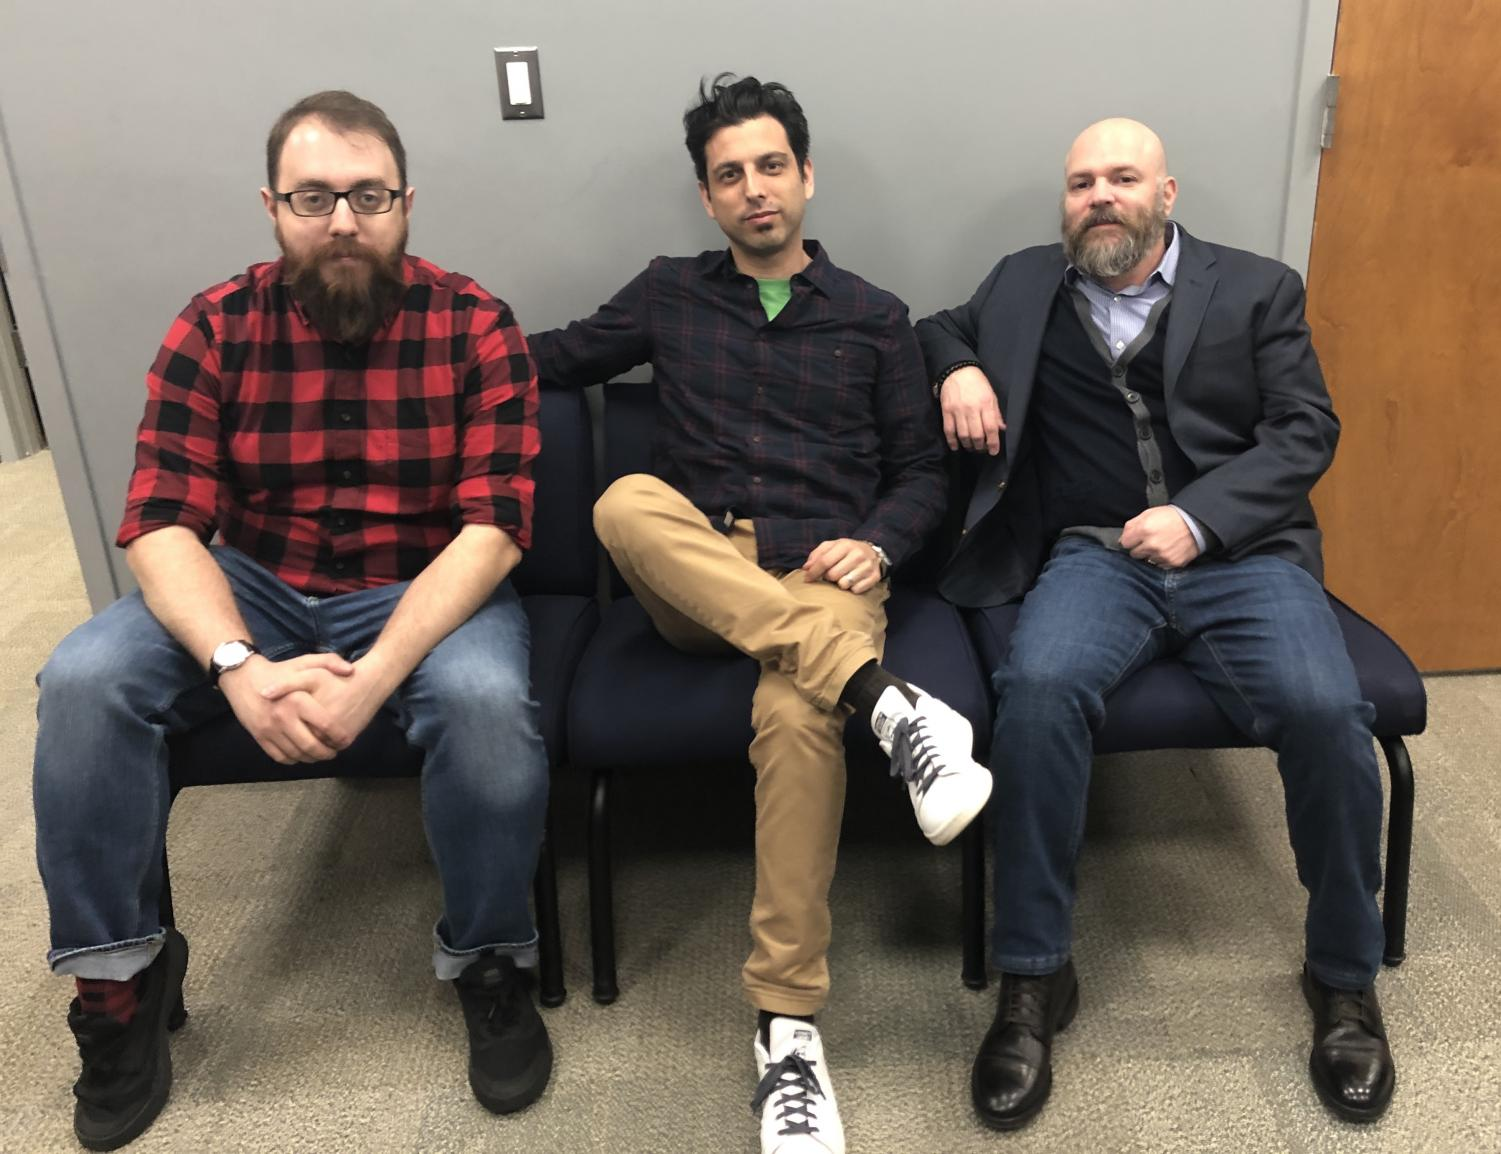 From left: Pace MCVA professors Lou Guarneri, David, Freeman, and Paul Ziek, whse classes are working together this semester in a trifecta that will help promote punk rock bands from the Bronx.